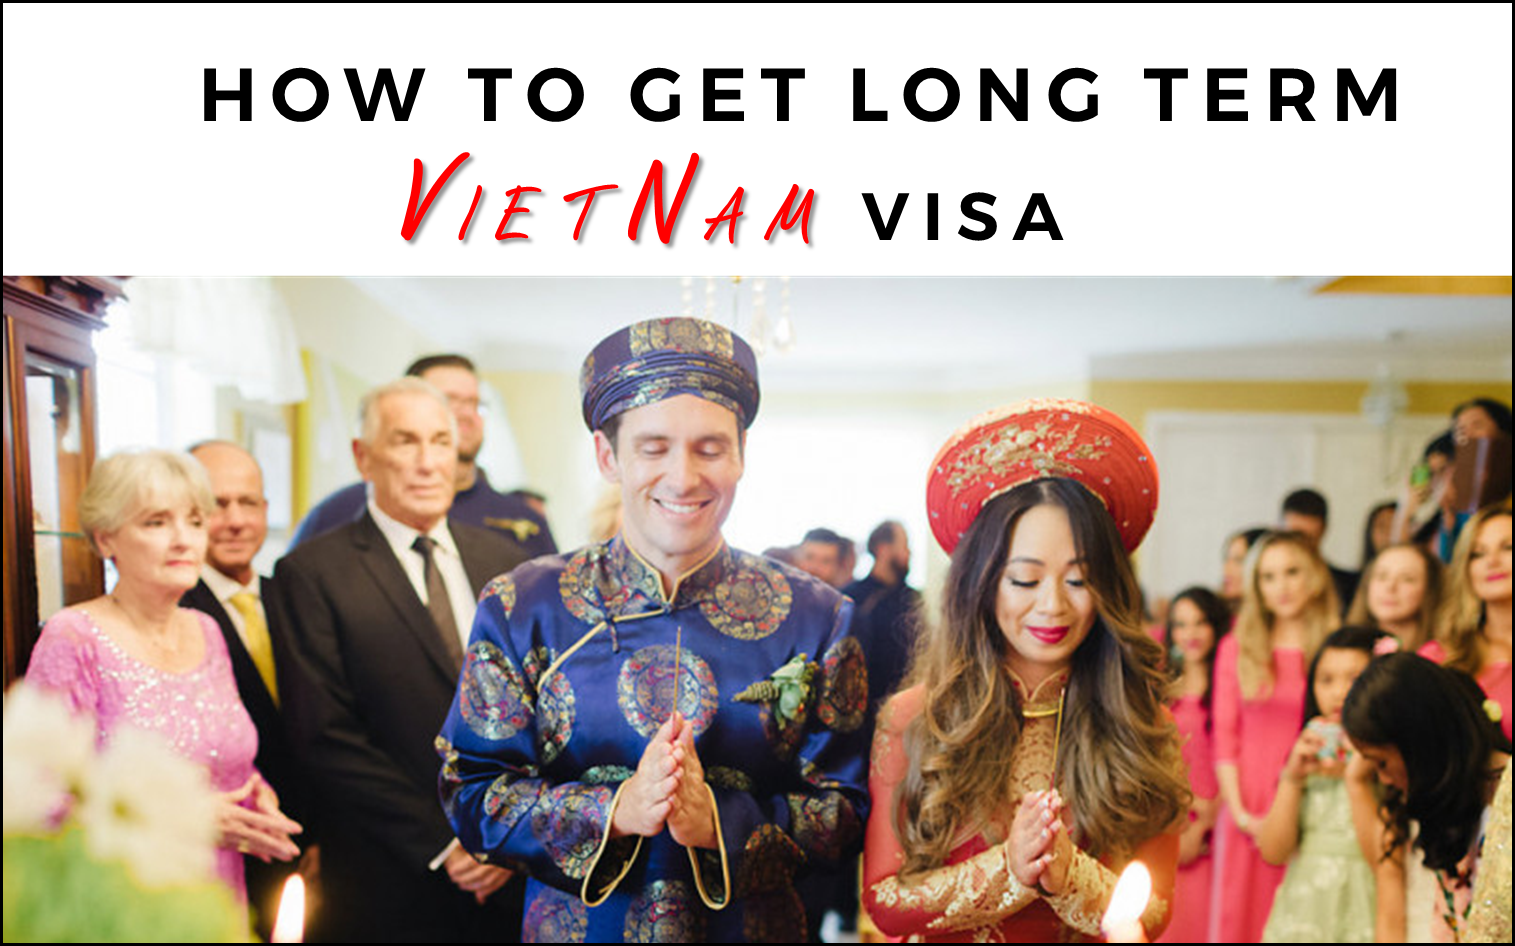 Steps to get long term Vietnam visa once you marry to Vietnamese national